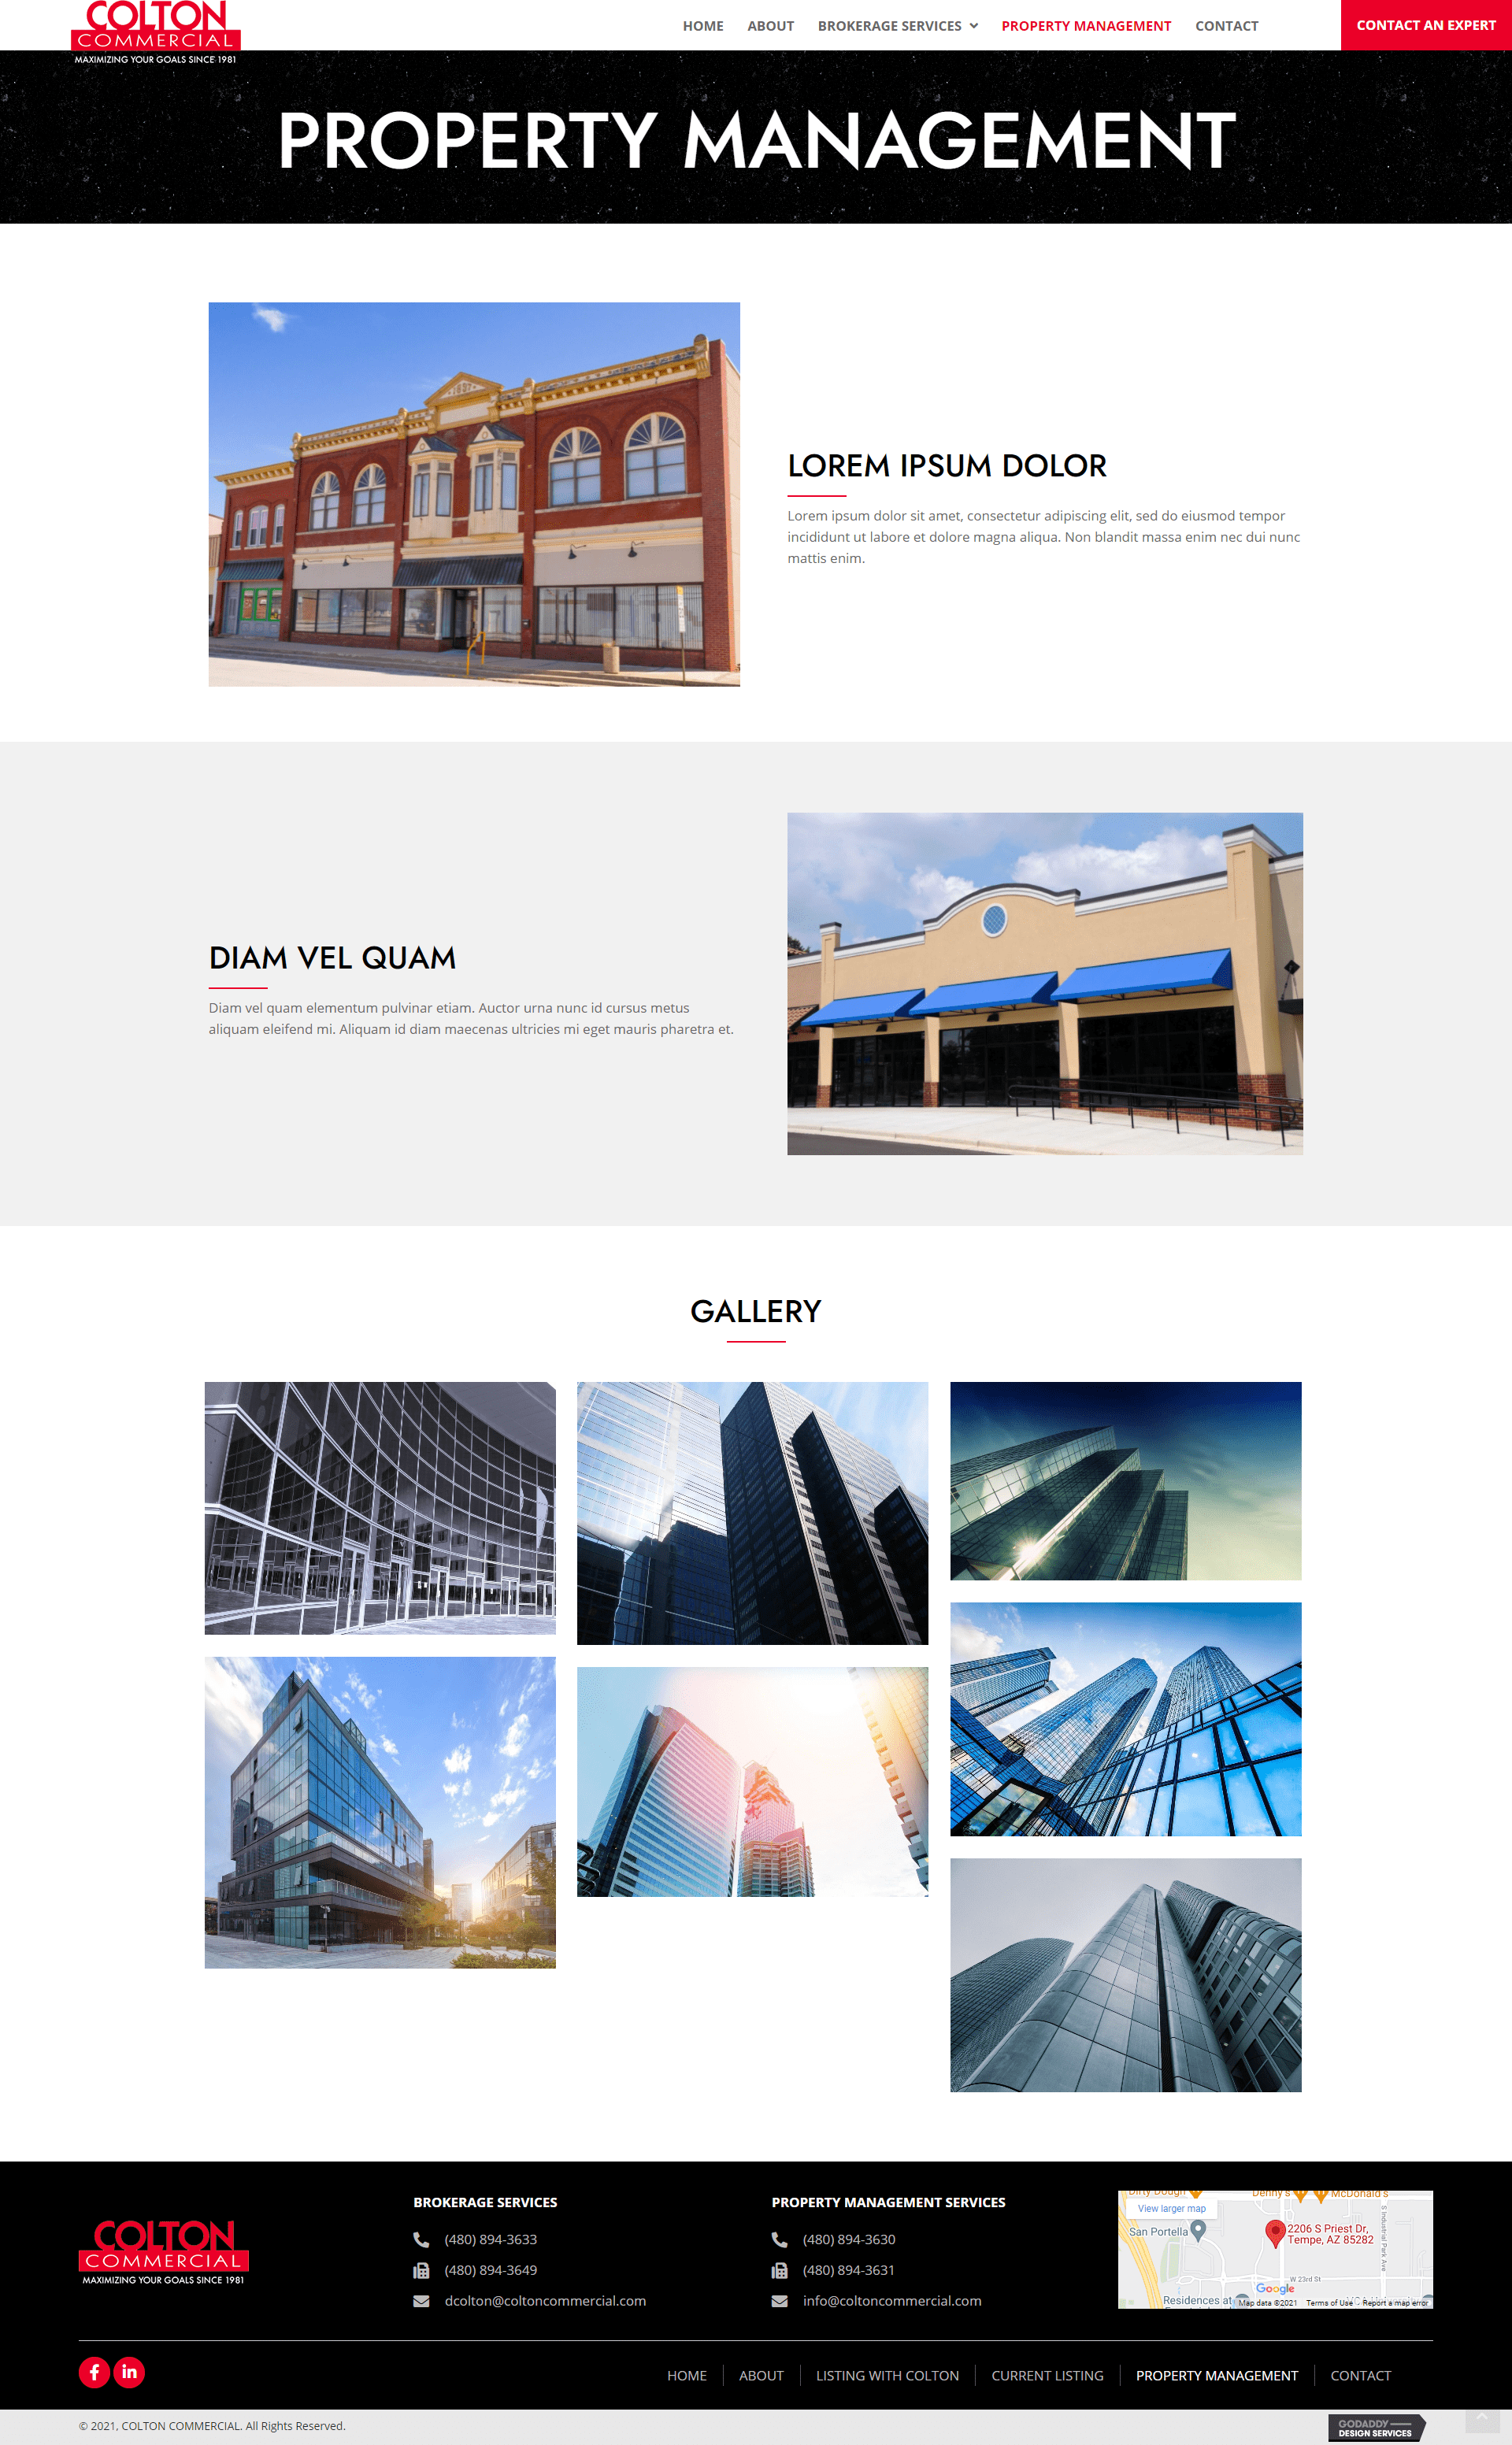 COLTON COMMERCIAL Propery page